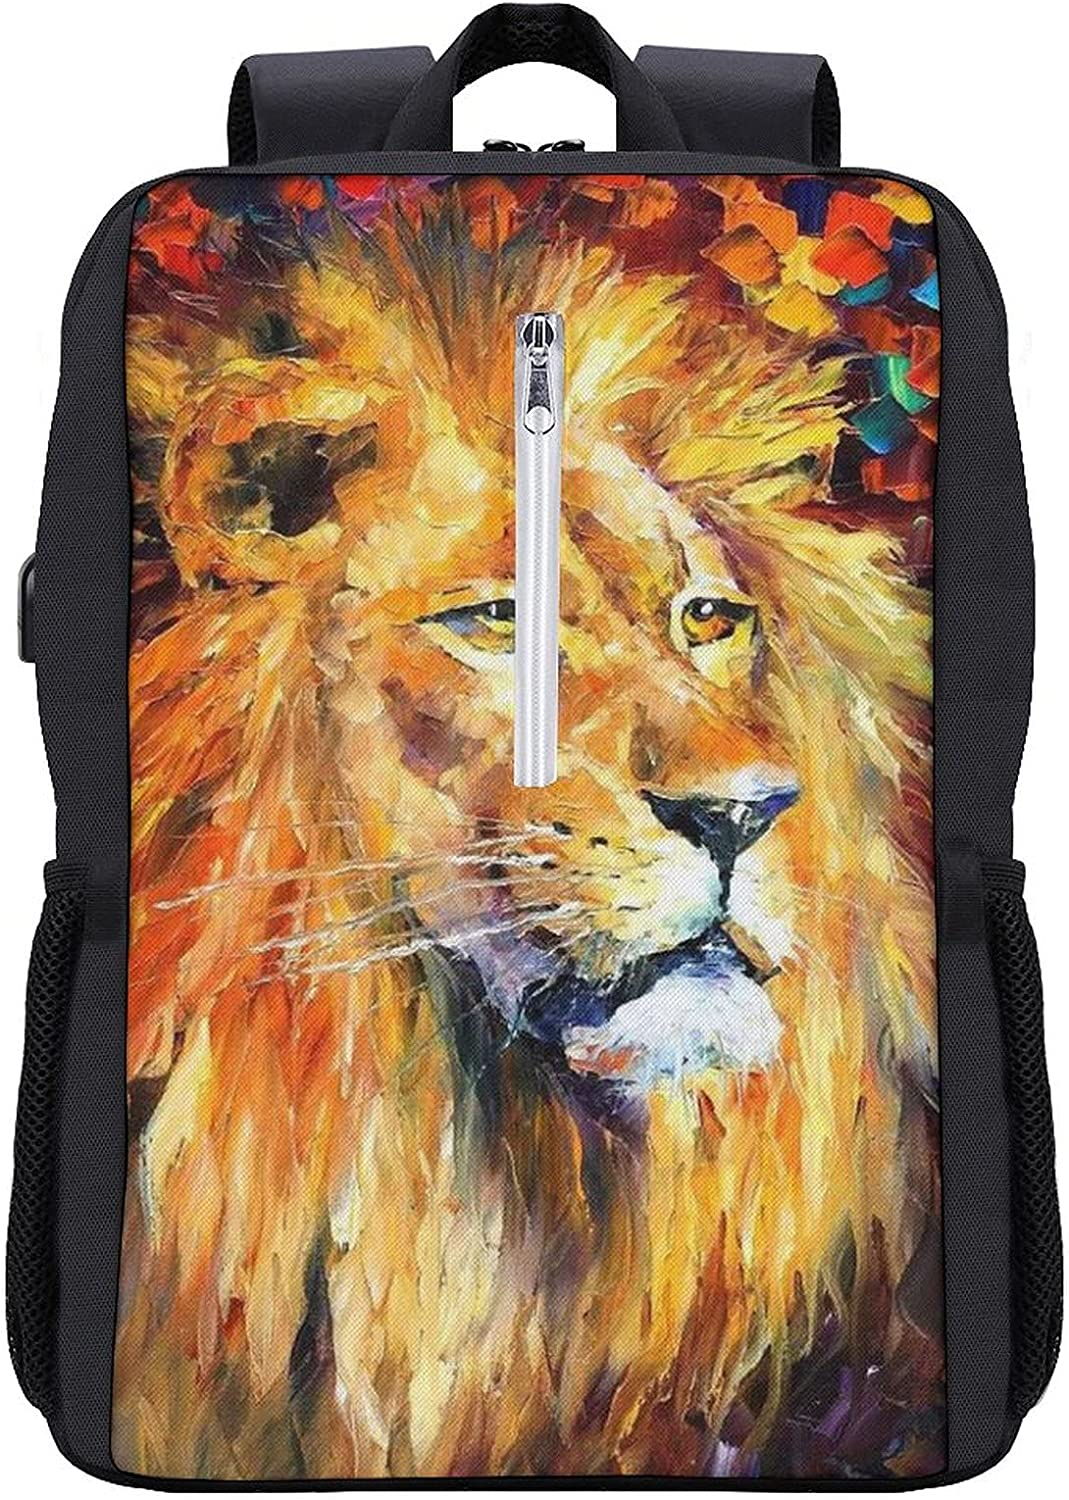 Oil Weekly update Cheap bargain Painting Lion Laptop Backpack Bag Durable Resistant Water